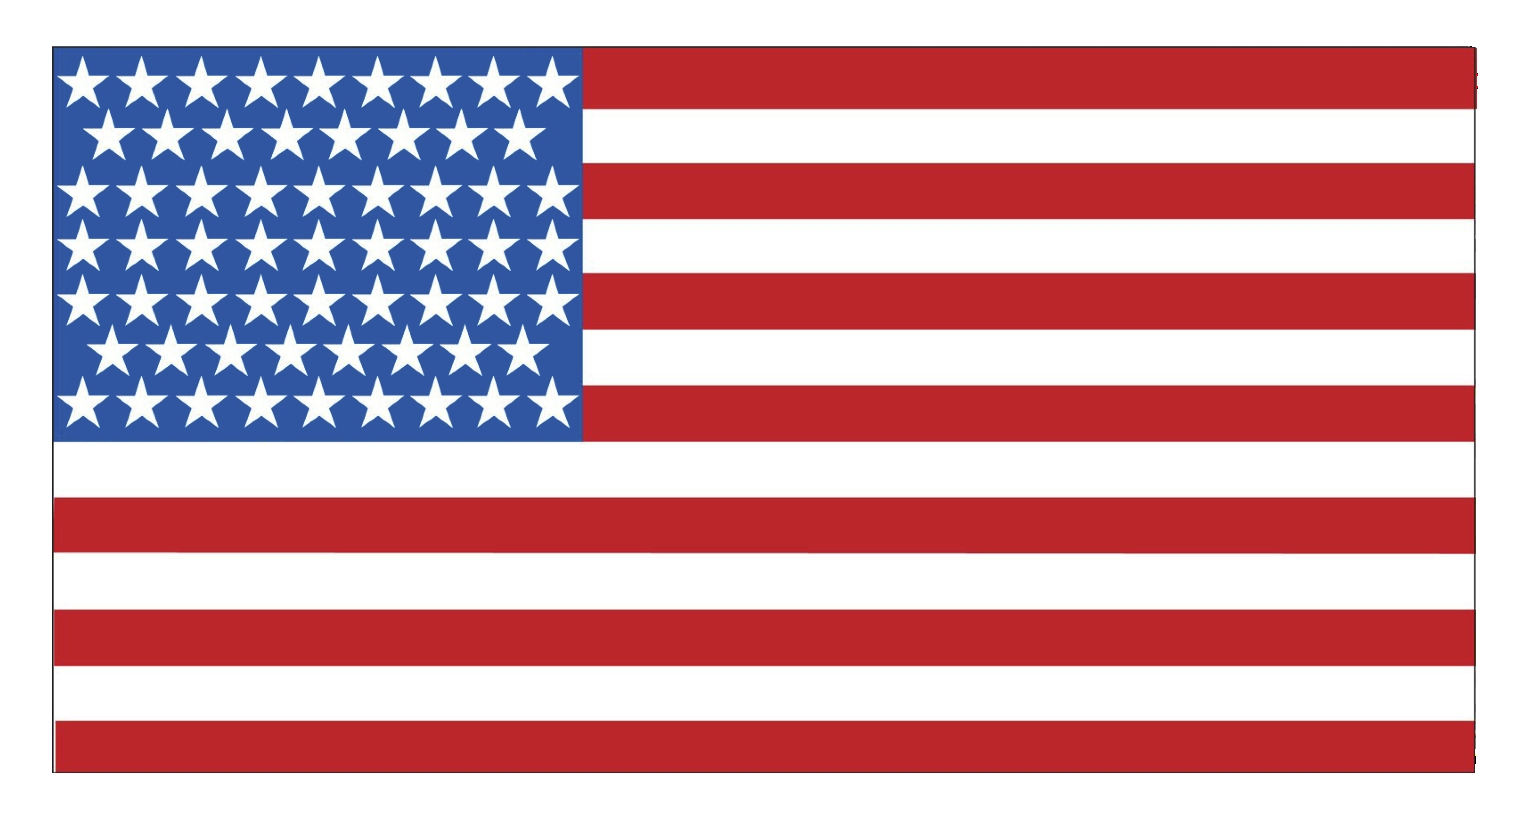 usa flag clipart at getdrawings com free for personal use usa flag rh getdrawings com usa flag clipart free usa flag clipart vector